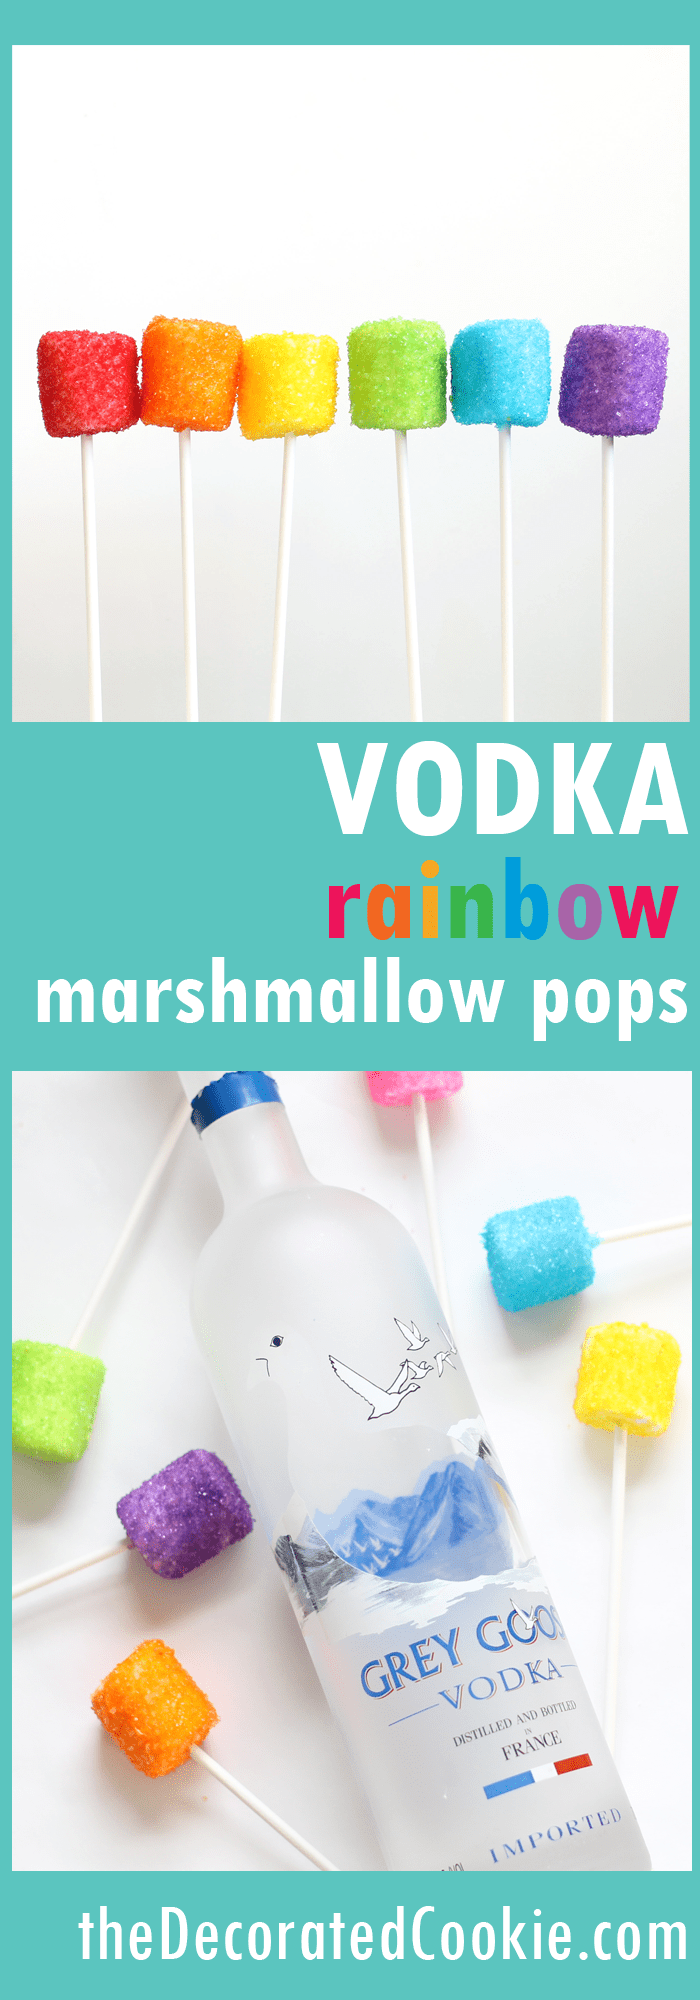 vodka dipped rainbow marshmallow pops